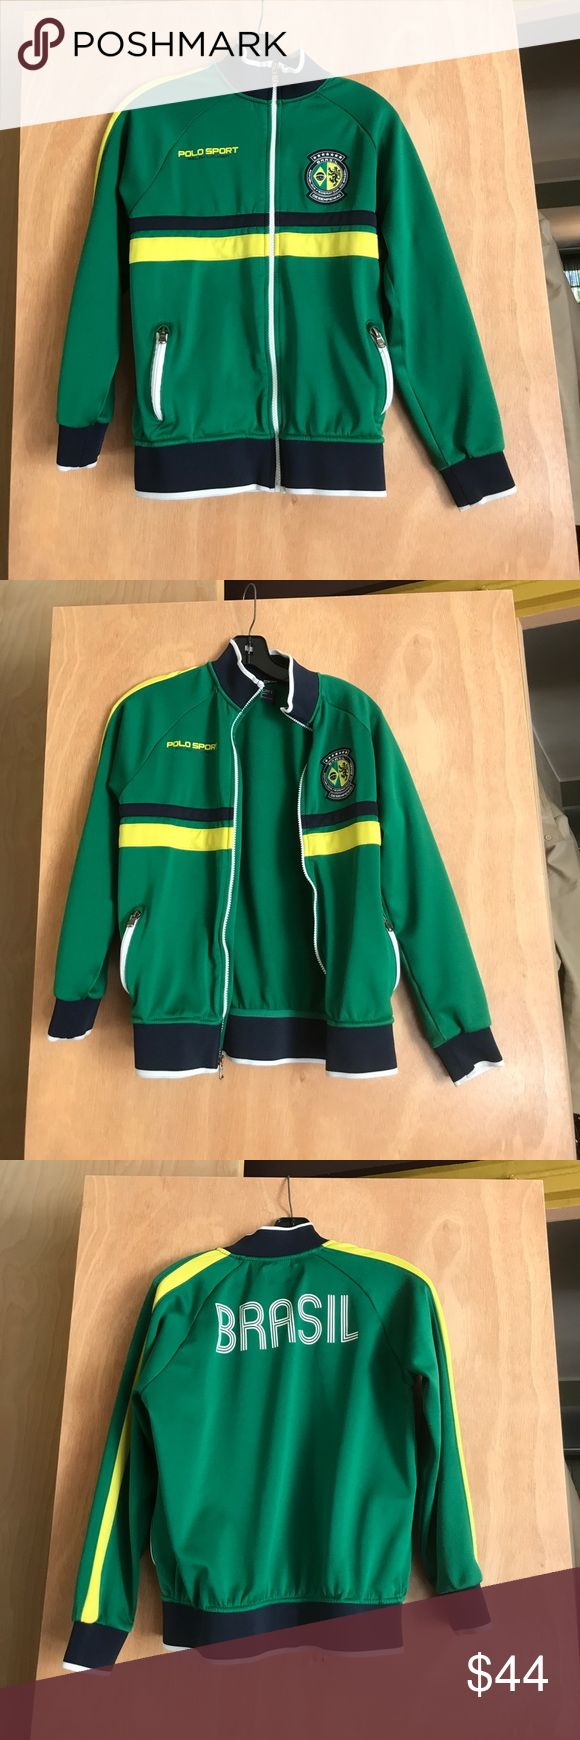 Polo Sport Ralph Lauren Boys size M Green and Yellow Polo Sport Ralph Lauren sweatshirt size M excellent condition Polo by Ralph Lauren Shirts & Tops Sweatshirts & Hoodies